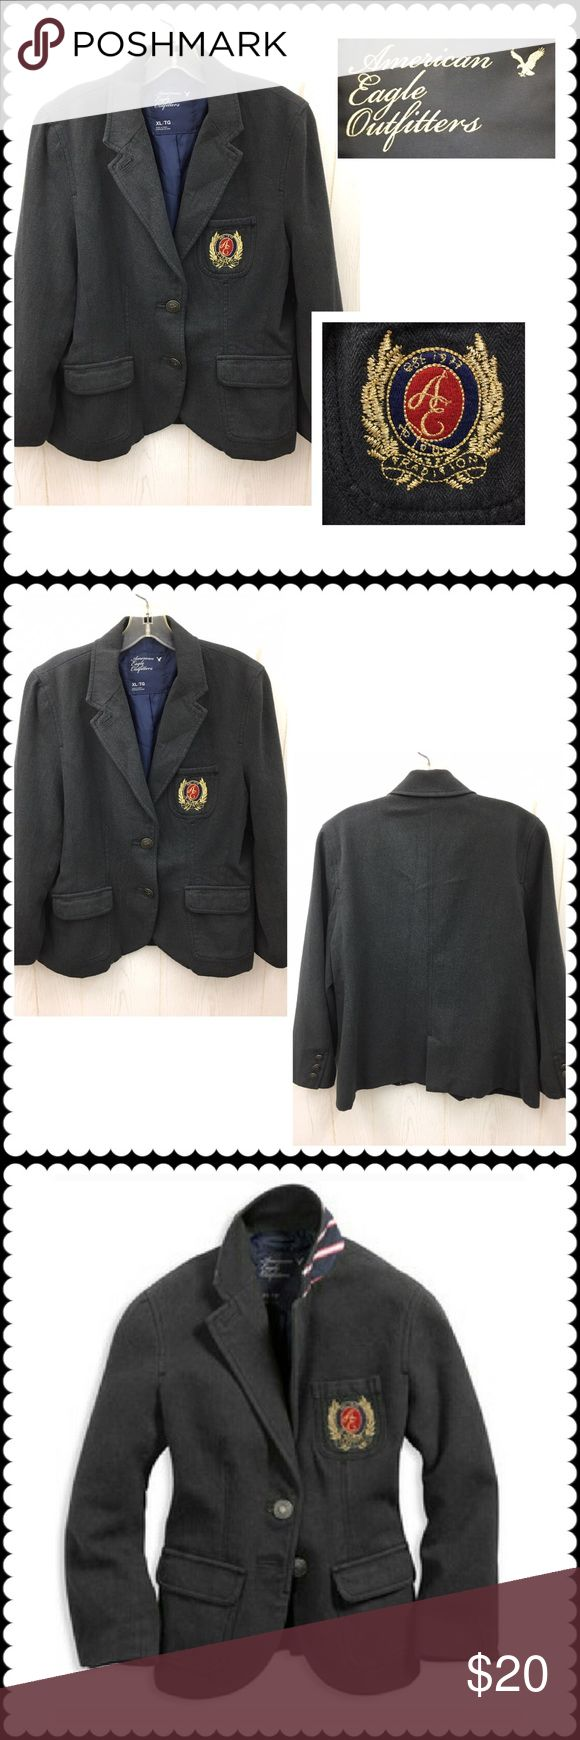 Herringbone blazer w/crest AMERICAN EAGLE Sz XL Dark gray herringbone print blazer by AMERICAN EAGLE. Lined. 2 button closure. 3rd pic is stock photo, 4th pic is for inspiration. Ladies size XL Excellent! American Eagle Outfitters Jackets & Coats Blazers